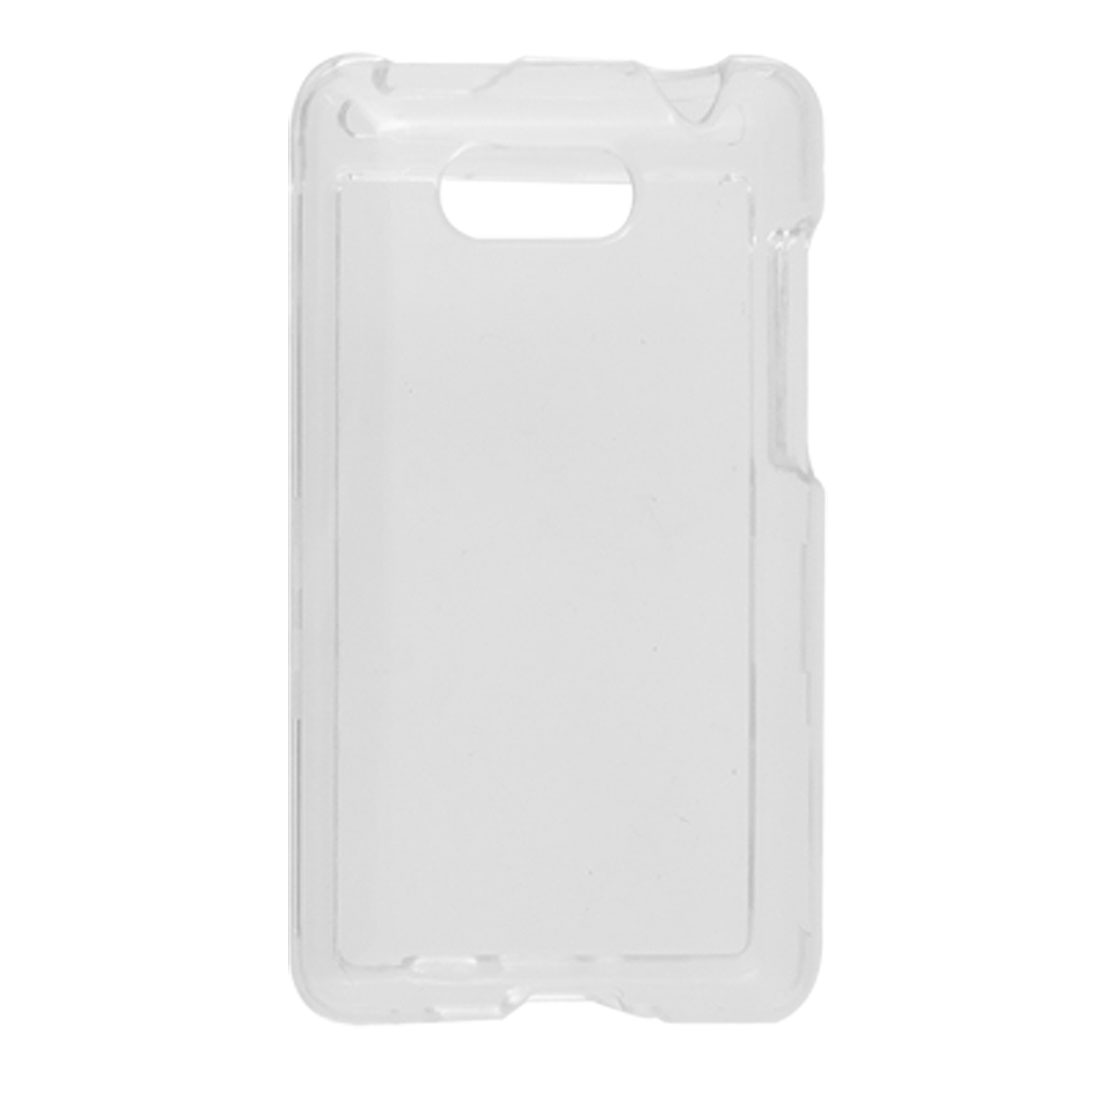 Hard Plastic Clear Cover Case Shell for HTC Aria A6366